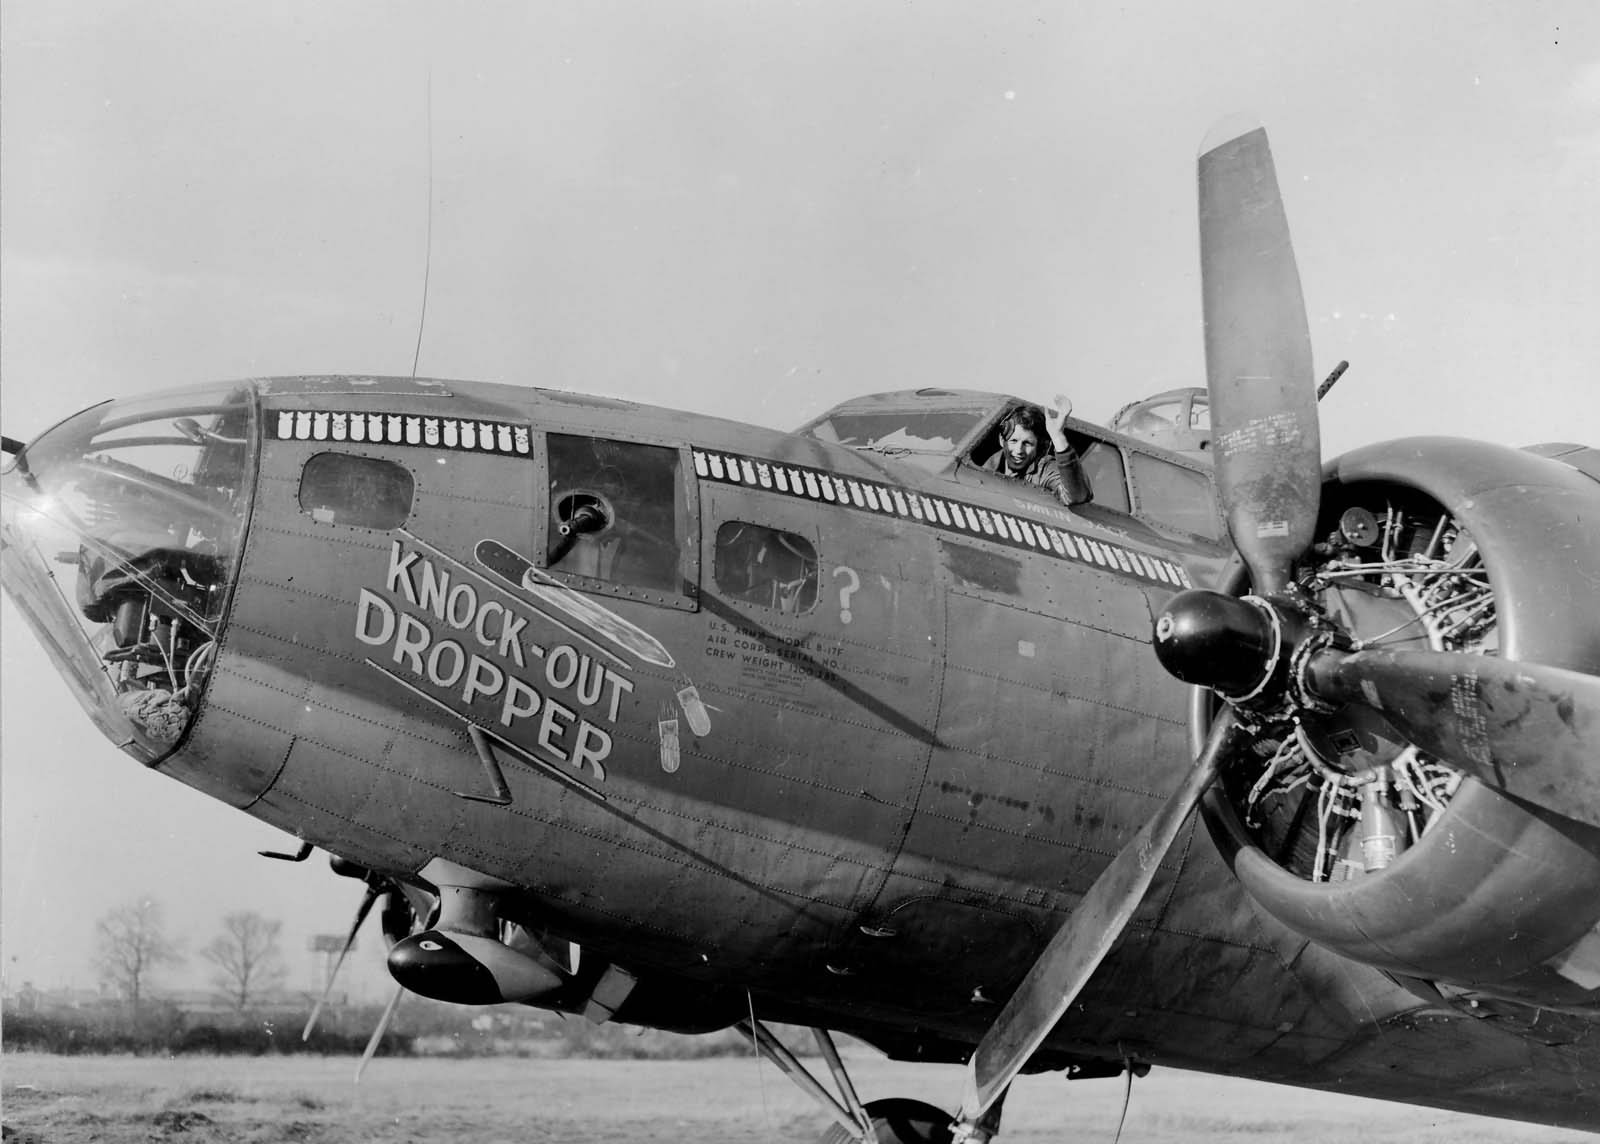 B-17F 303rd Bomb Group Knock Out Dropper Molesworth England 1943